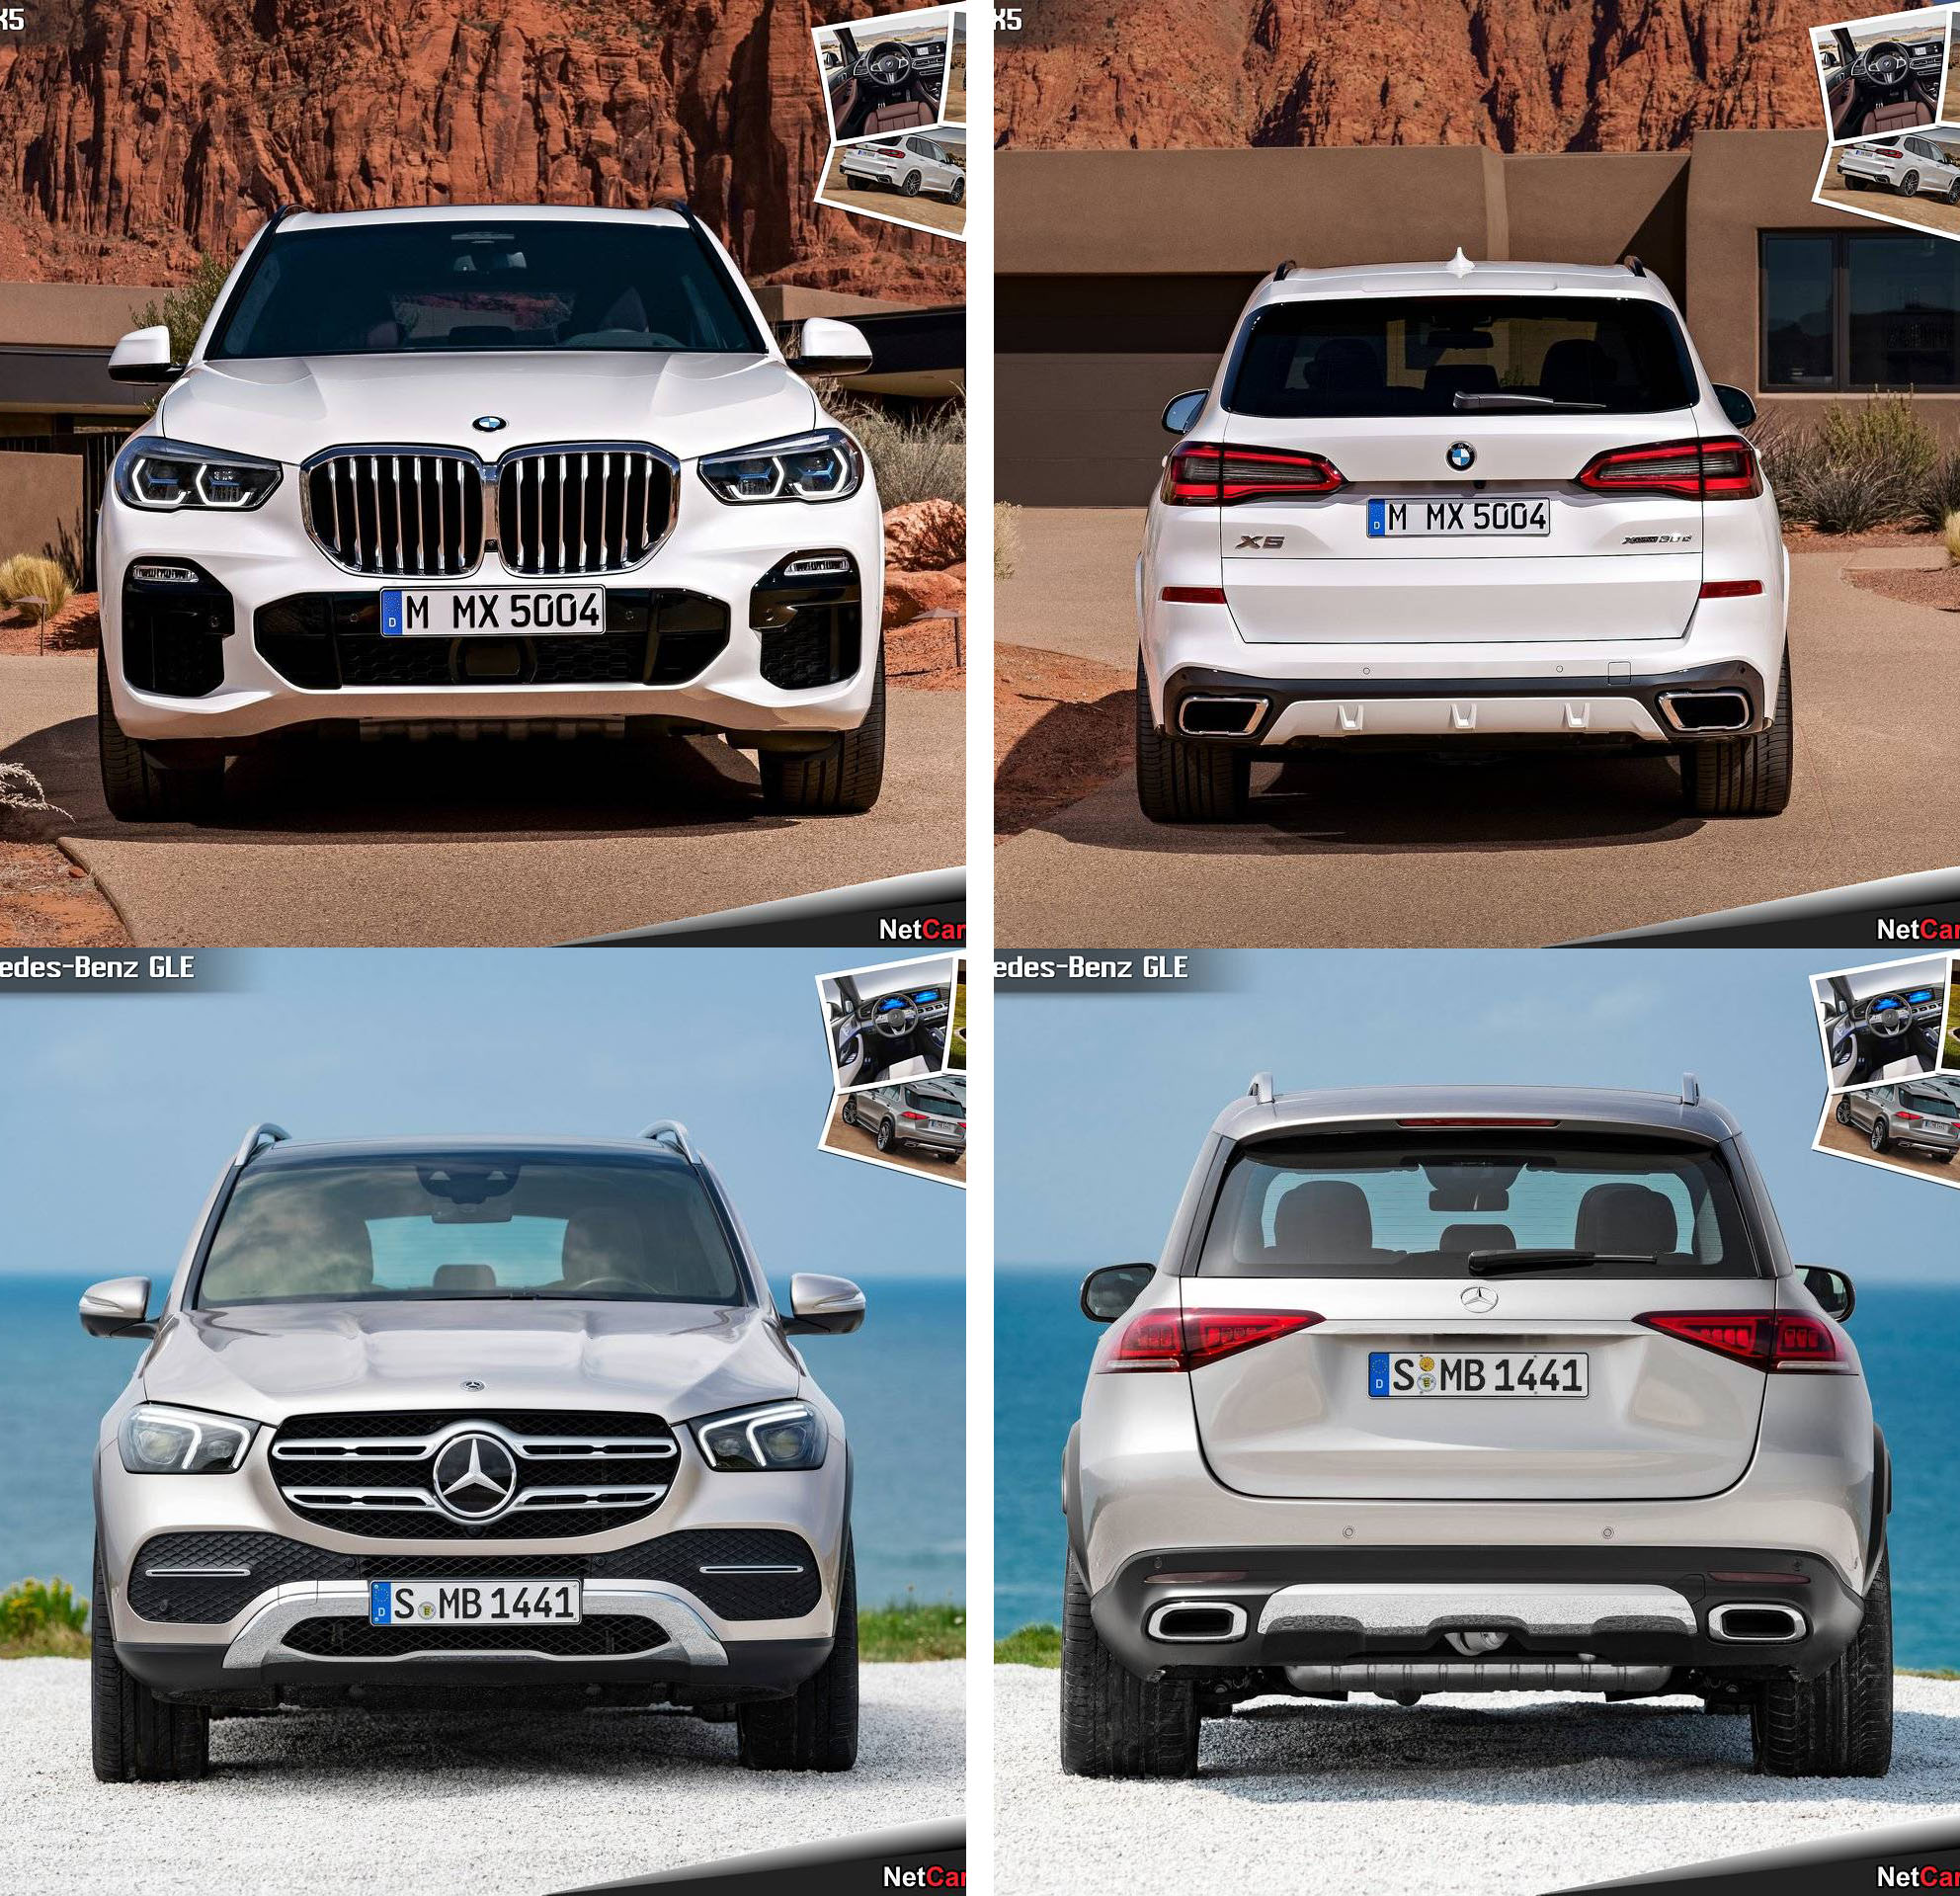 Bmw Xs5: 2019 BMW X5 Vs 2020 Mercedes-Benz GLE